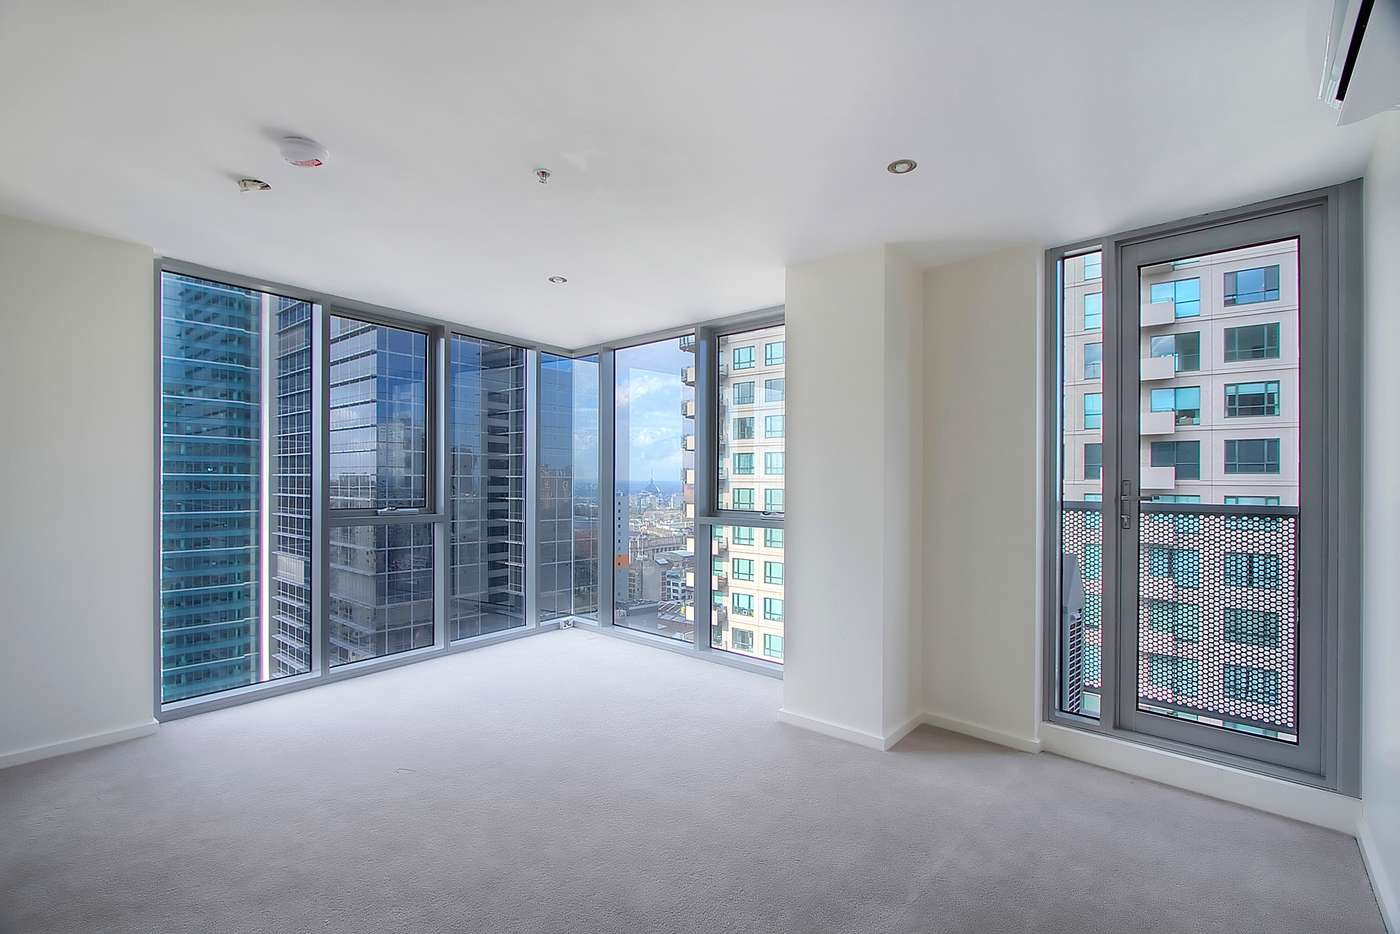 Main view of Homely apartment listing, 1601/8 Exploration Lane, Melbourne VIC 3000